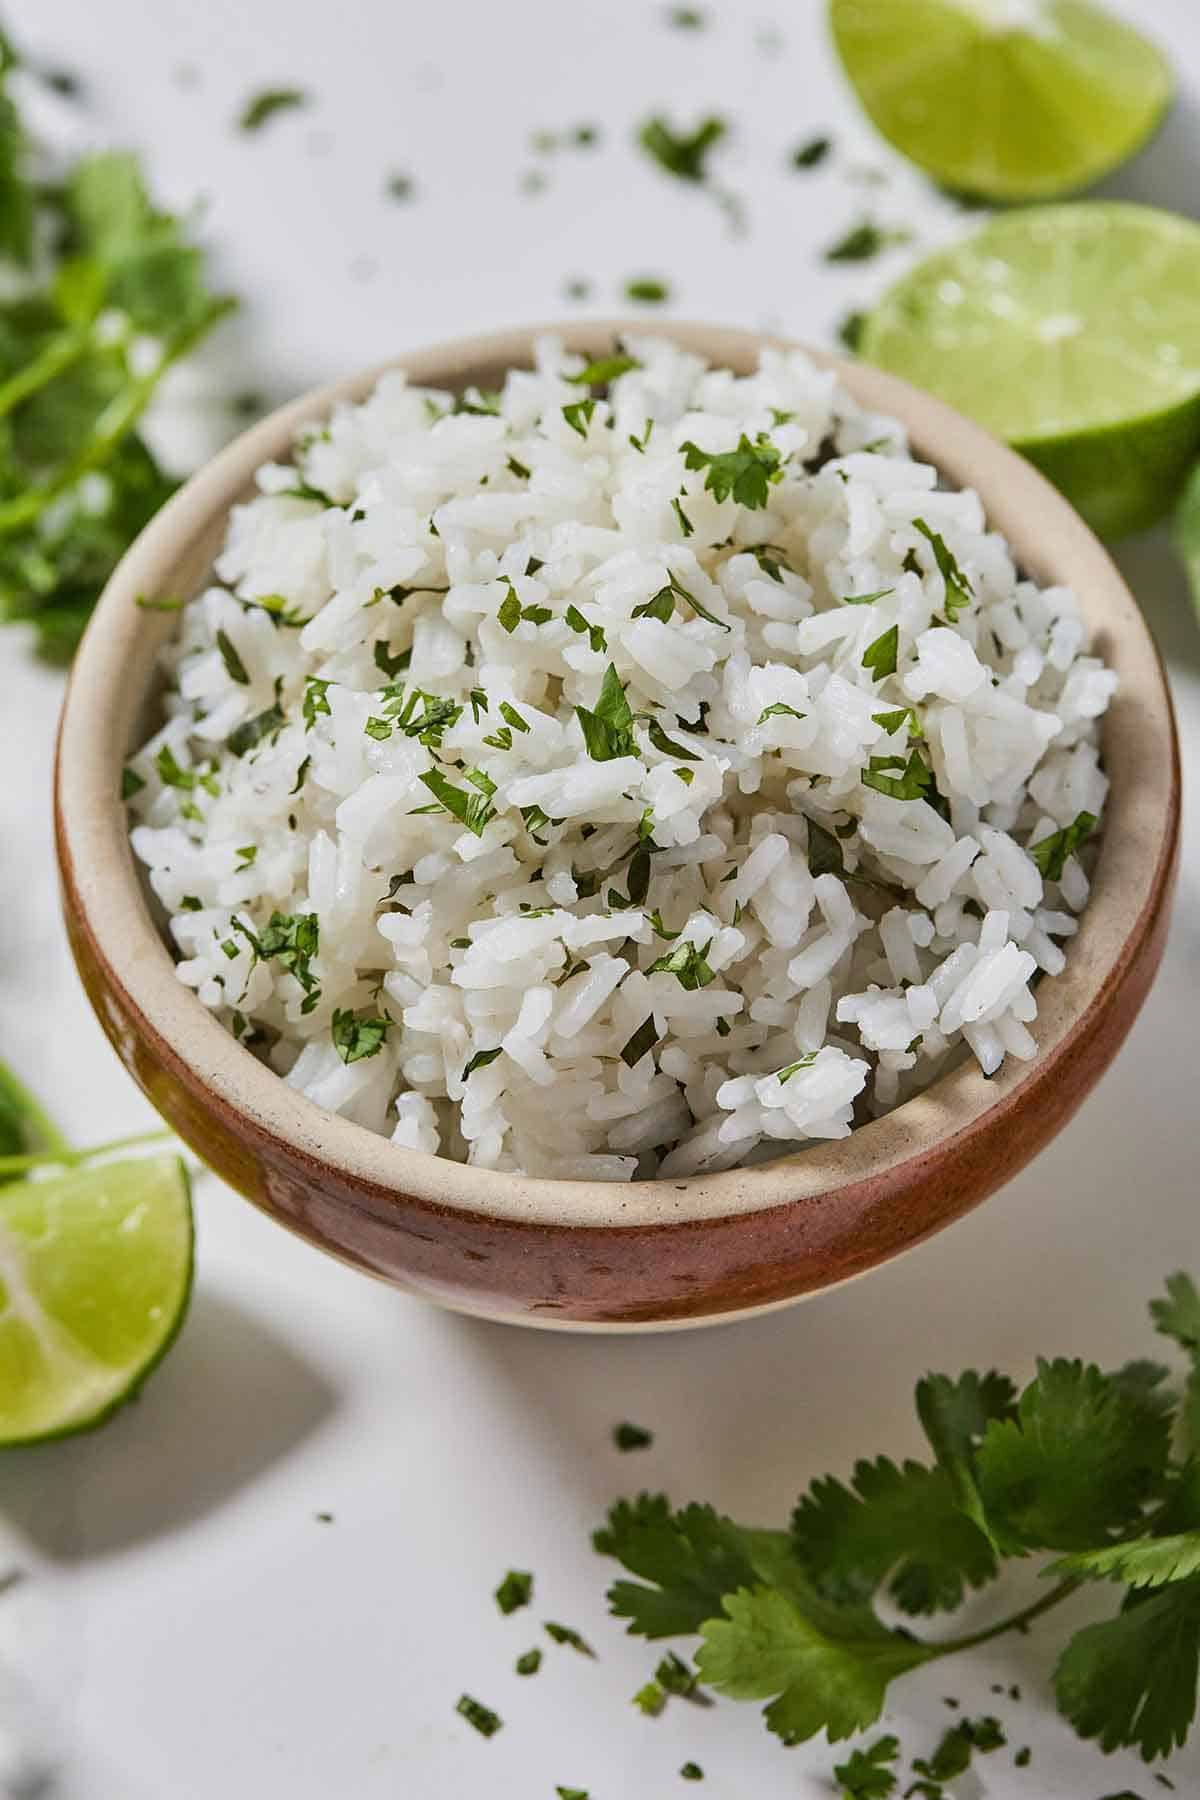 Overhead view of a bowl of cilantro lime rice with a couple of cut limes and fresh cilantros on the table.